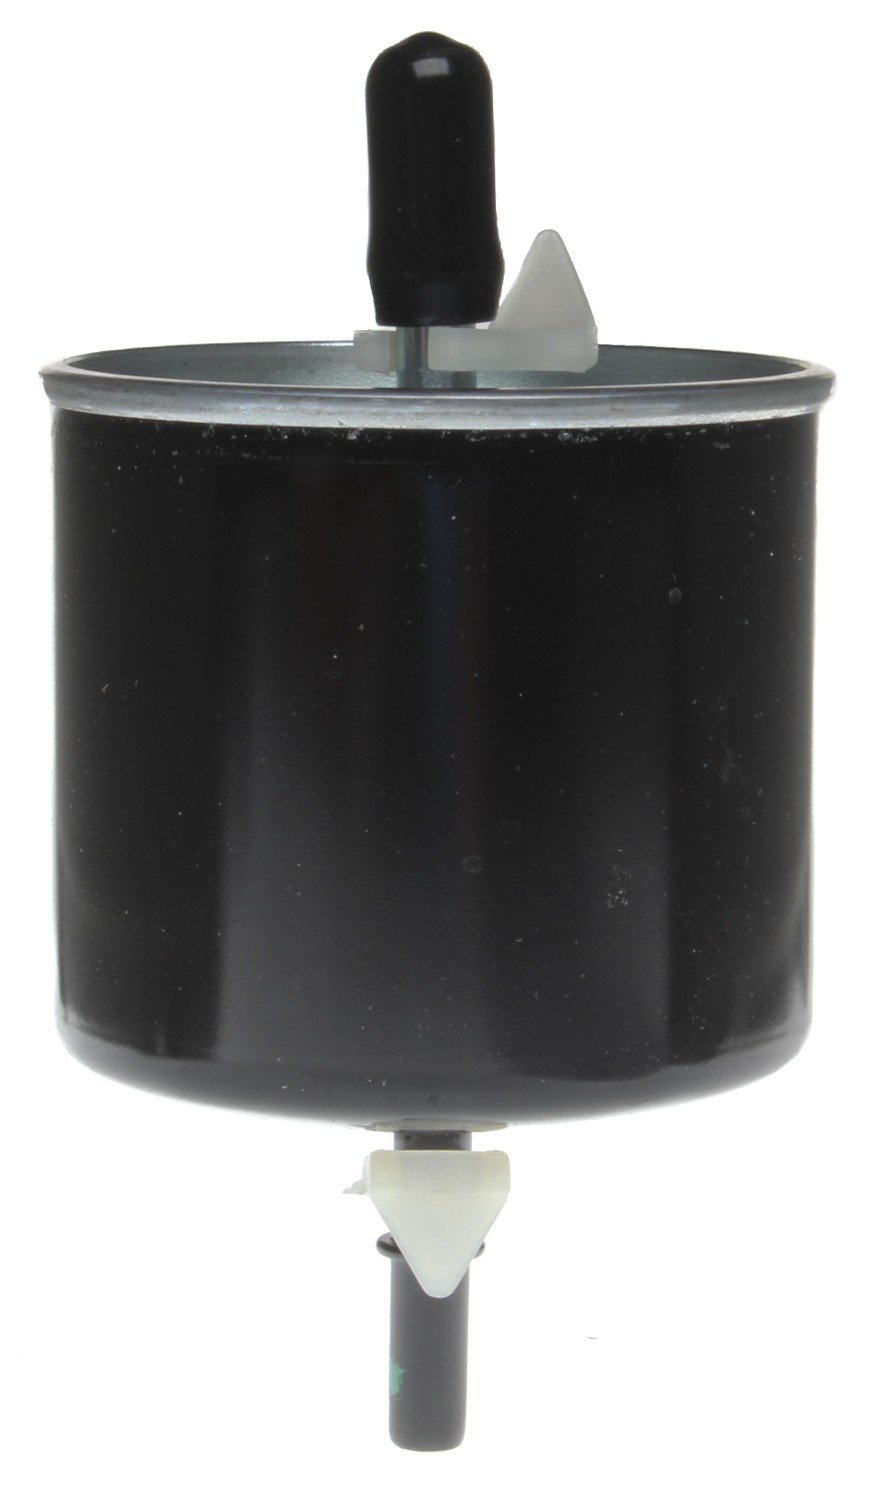 hight resolution of  2002 ford escape fuel filter m1 kl 668